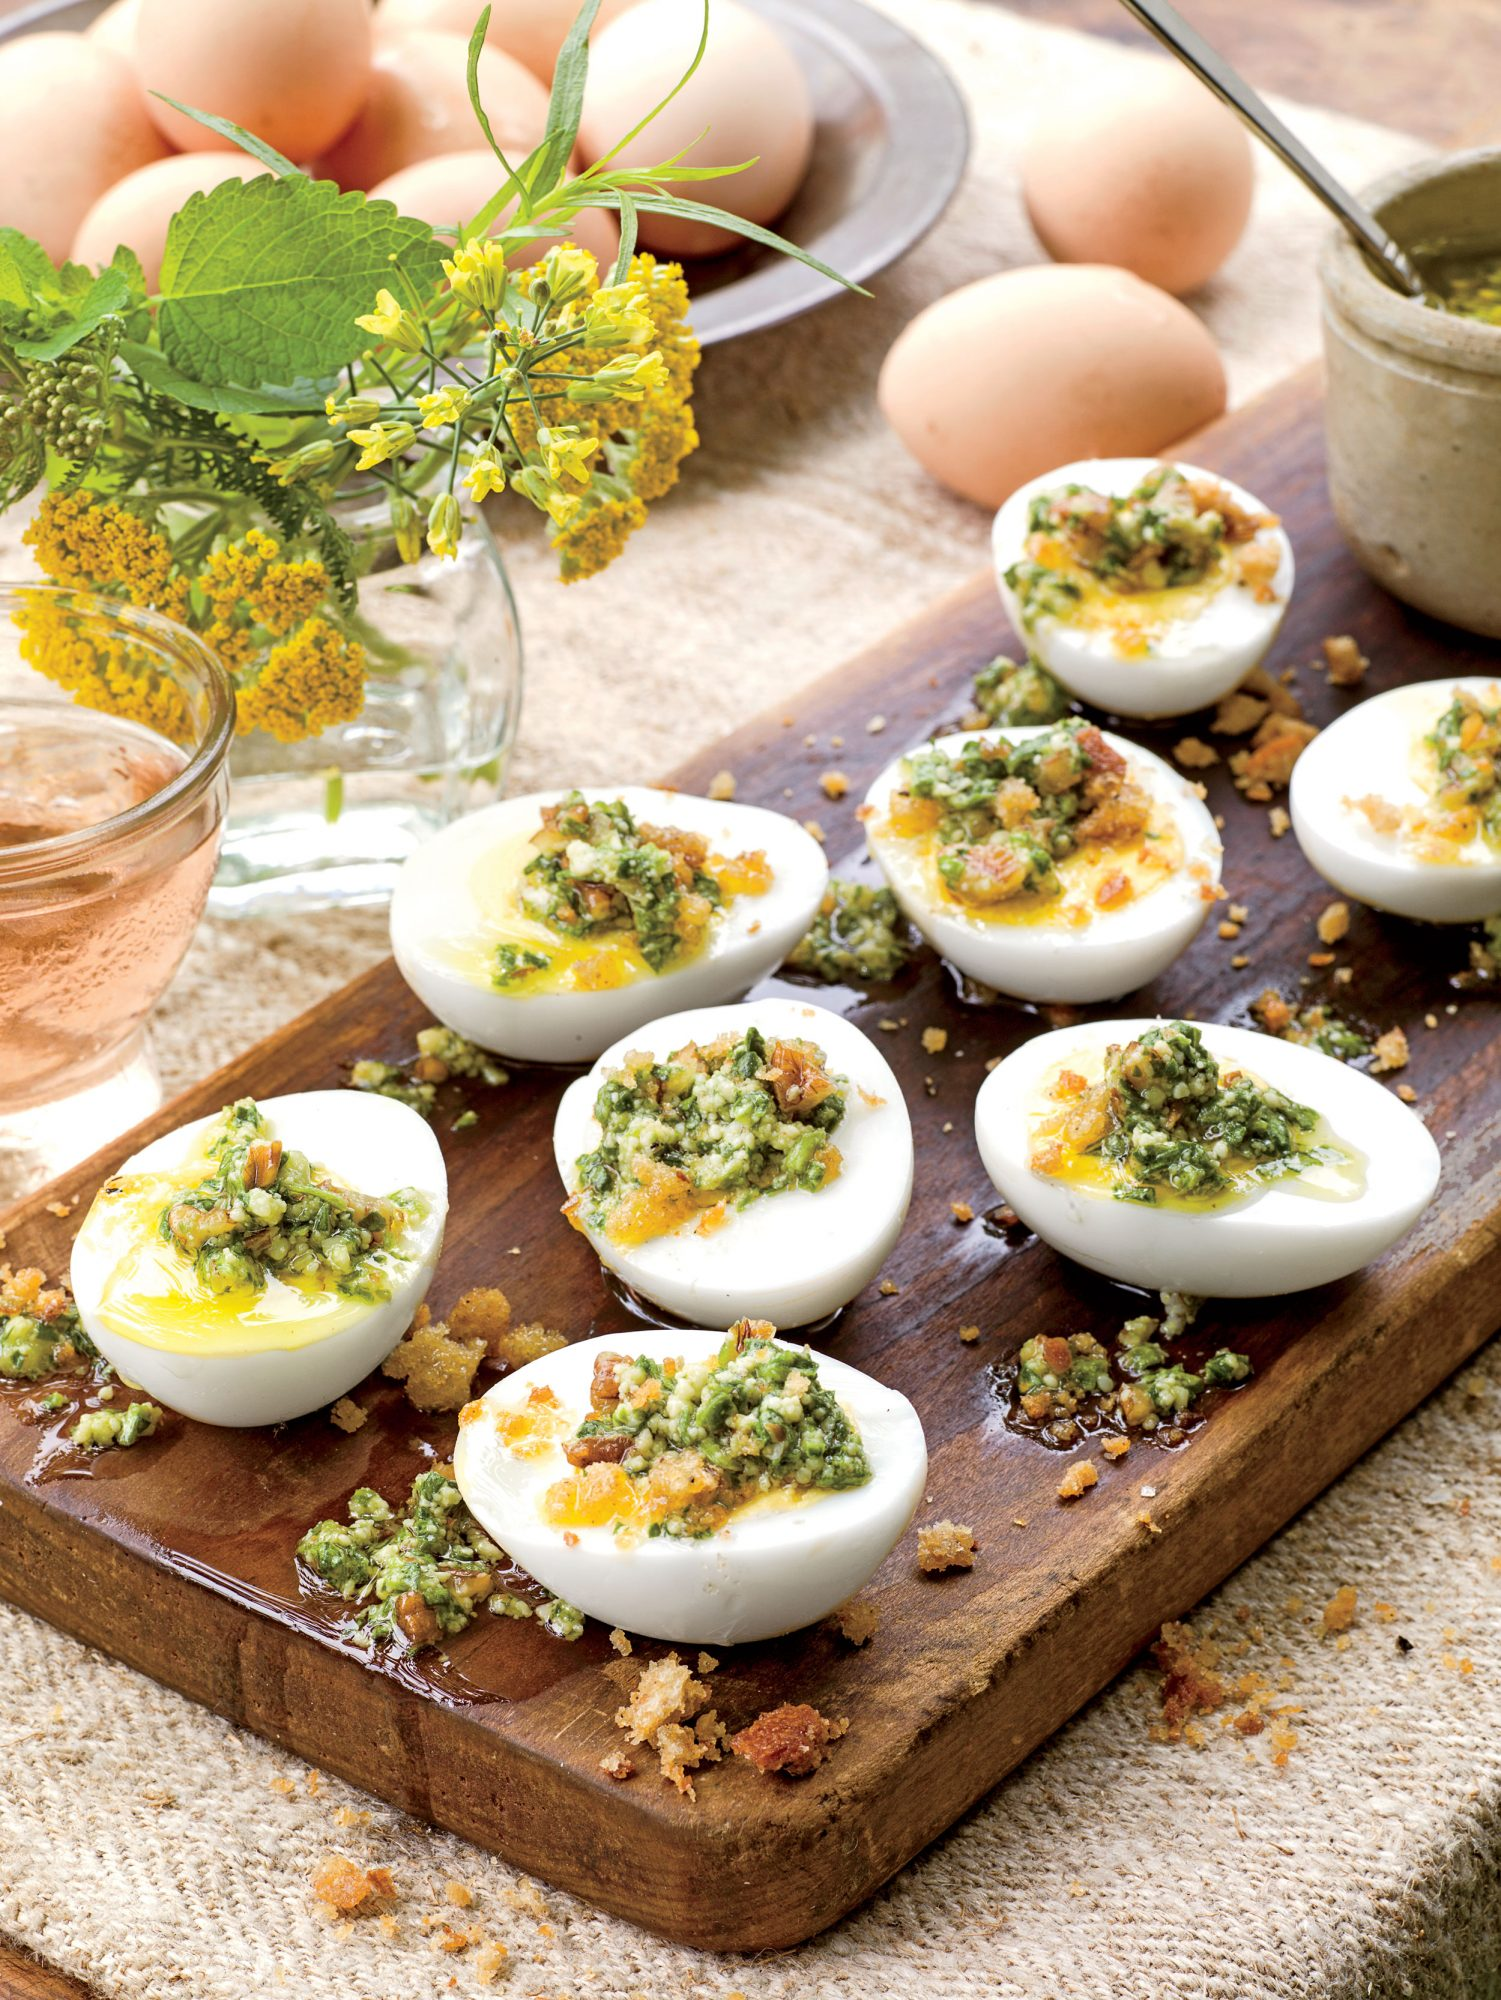 Spinach-and-Three-Herb Pesto Served on Eggs